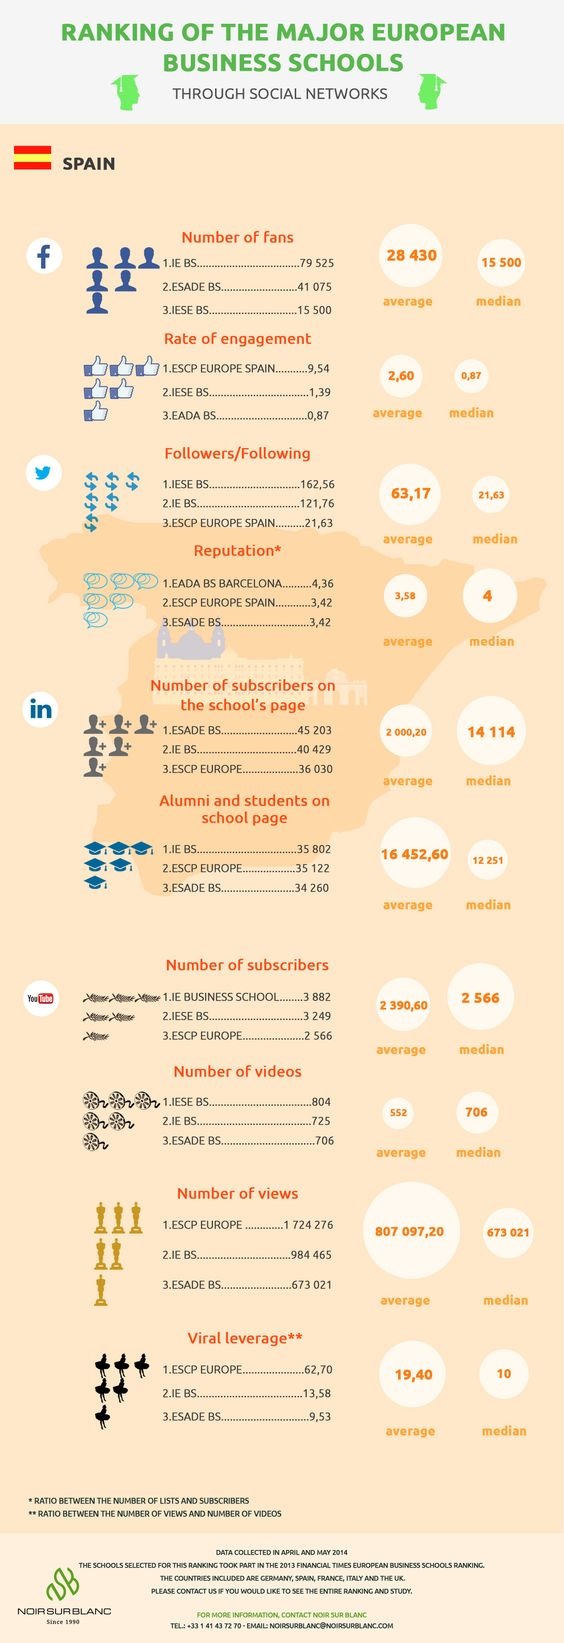 Ranking of the major European business schools through social networks : Spain